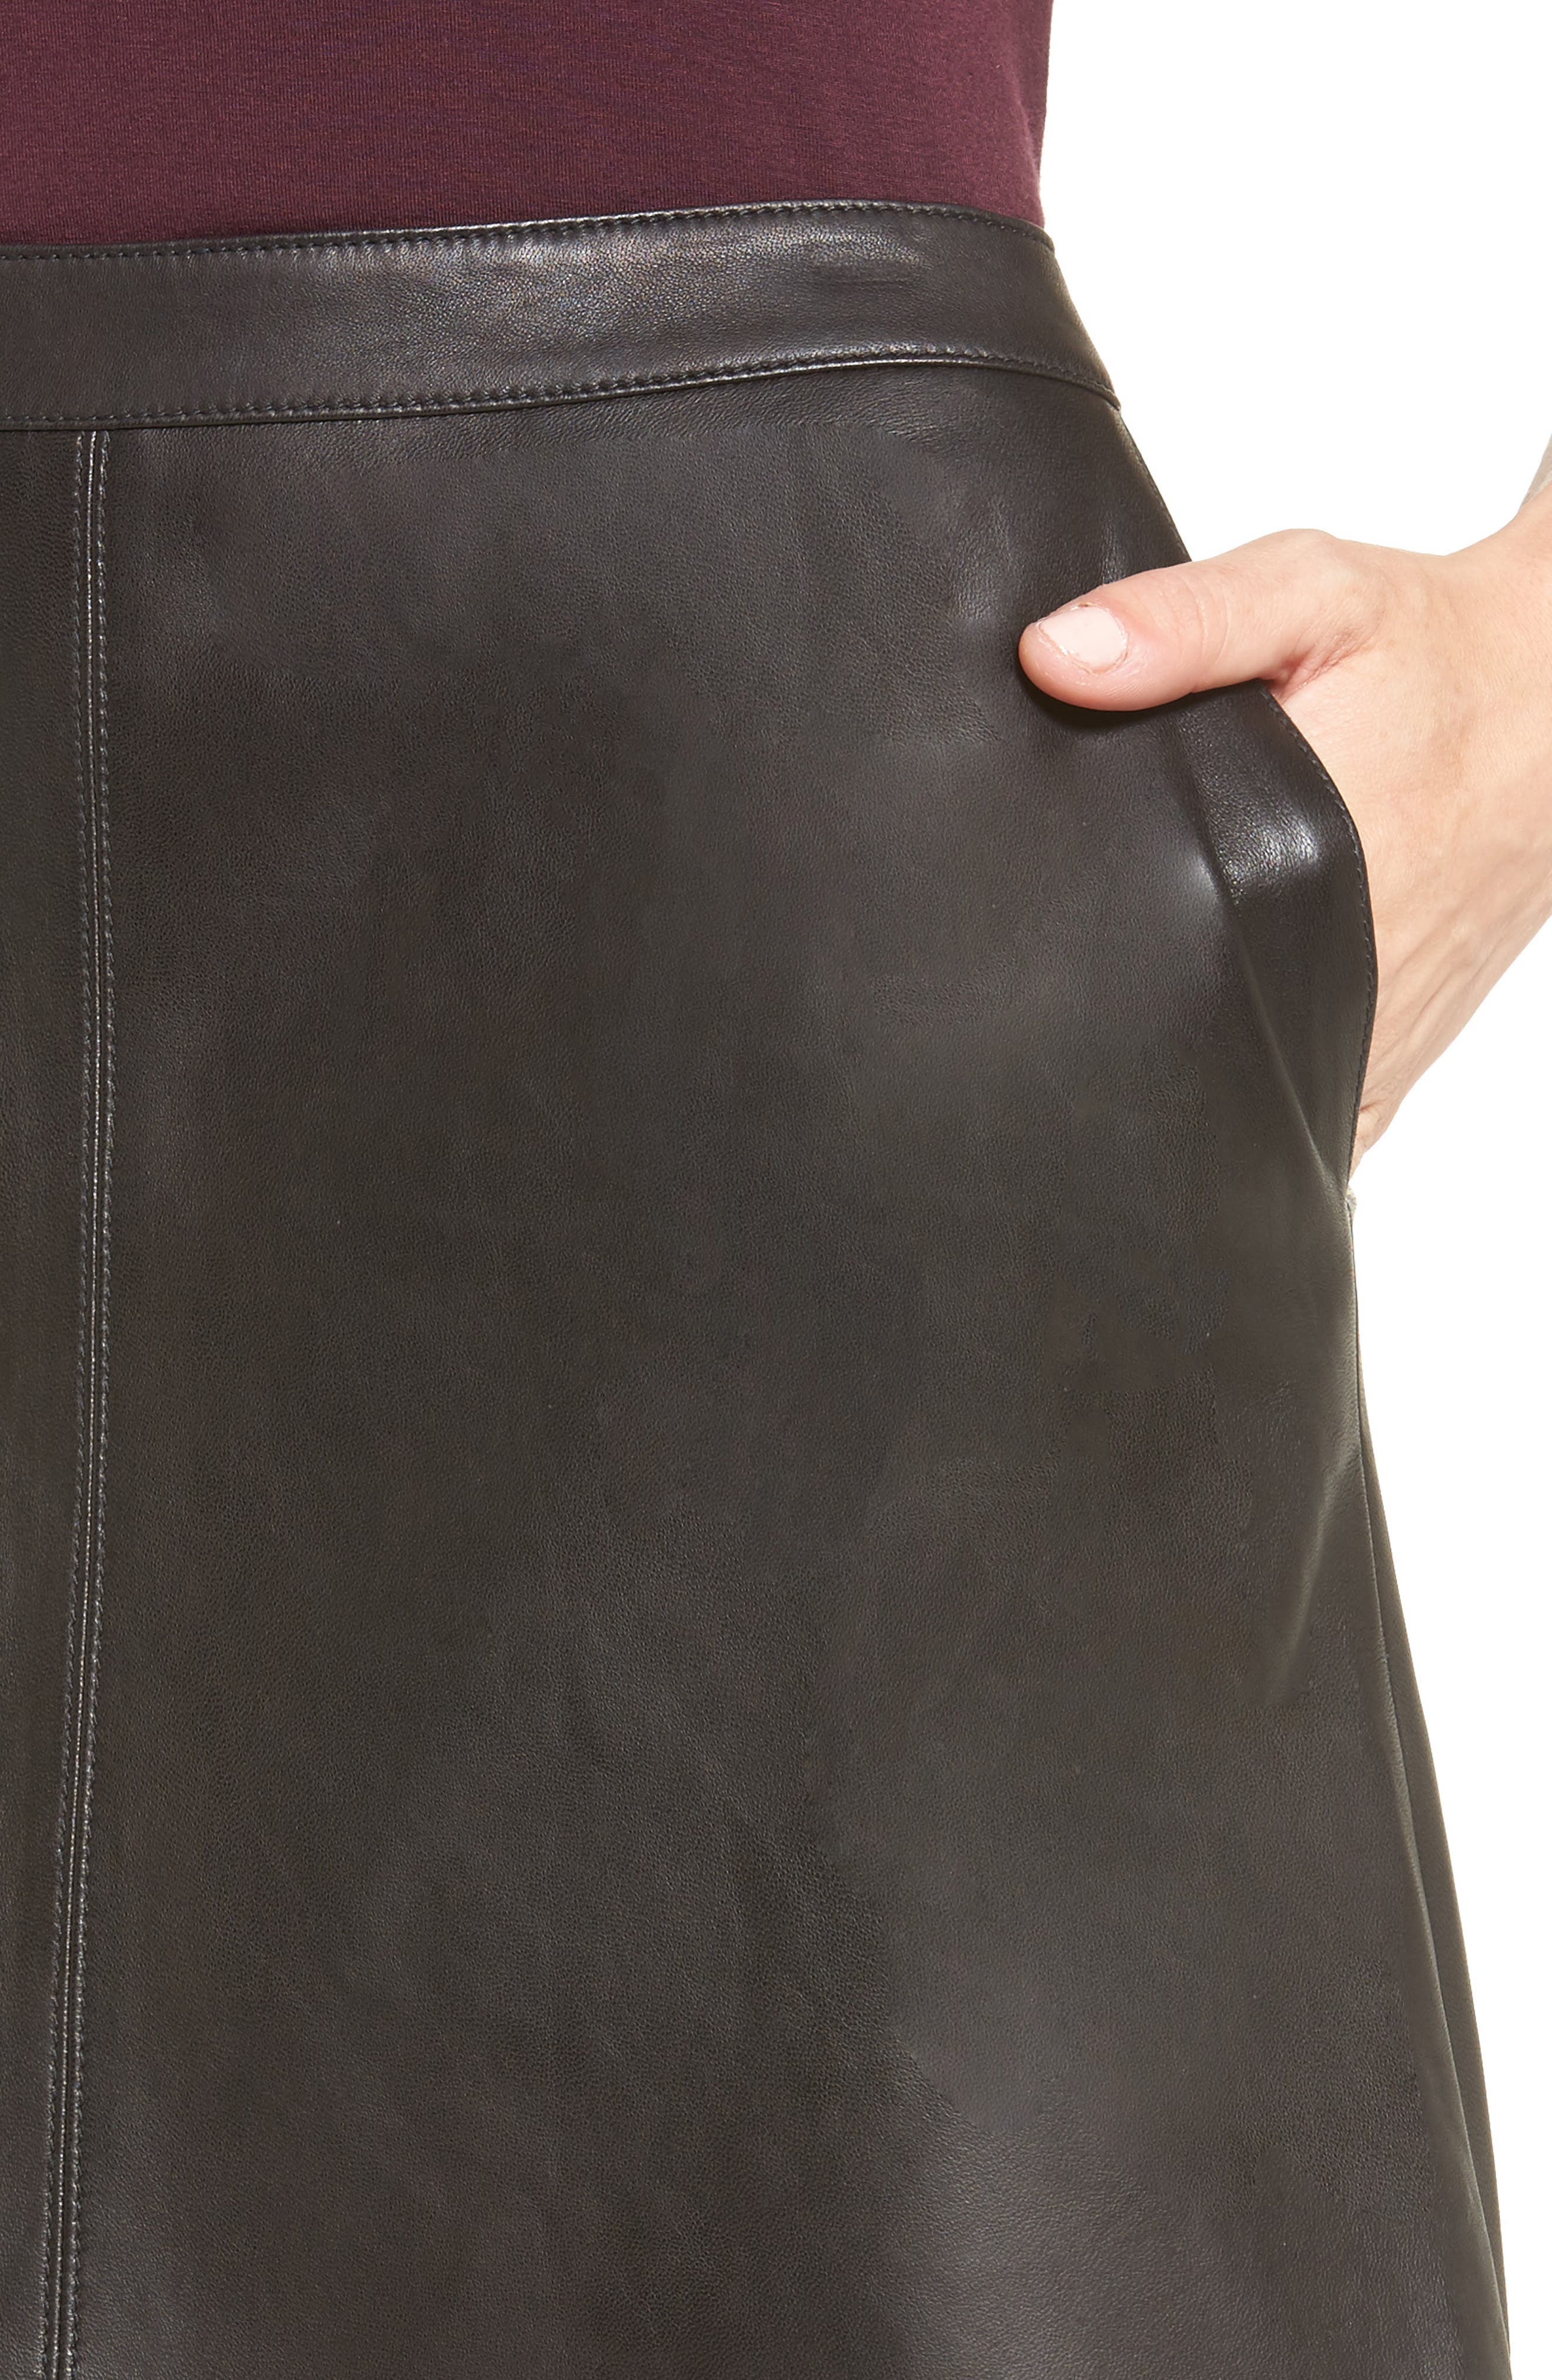 A-Line Leather Skirt,                             Alternate thumbnail 4, color,                             001